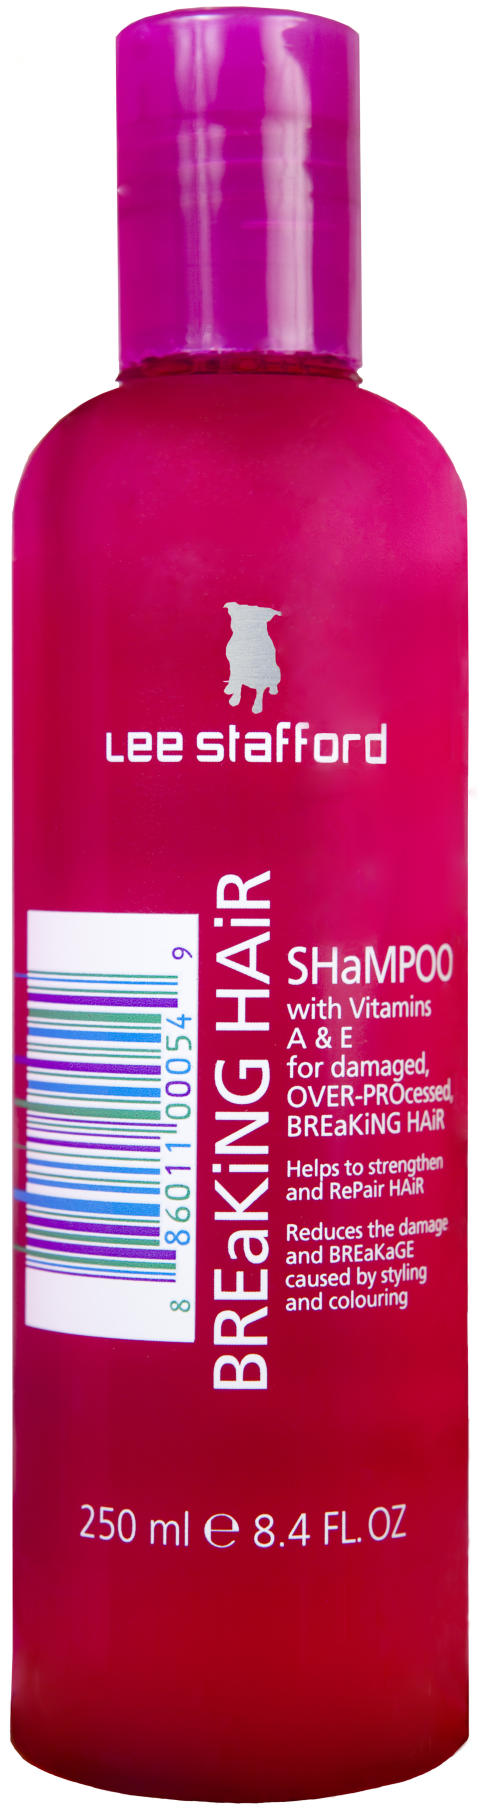 Lee Stafford - Breaking Hair Shampoo